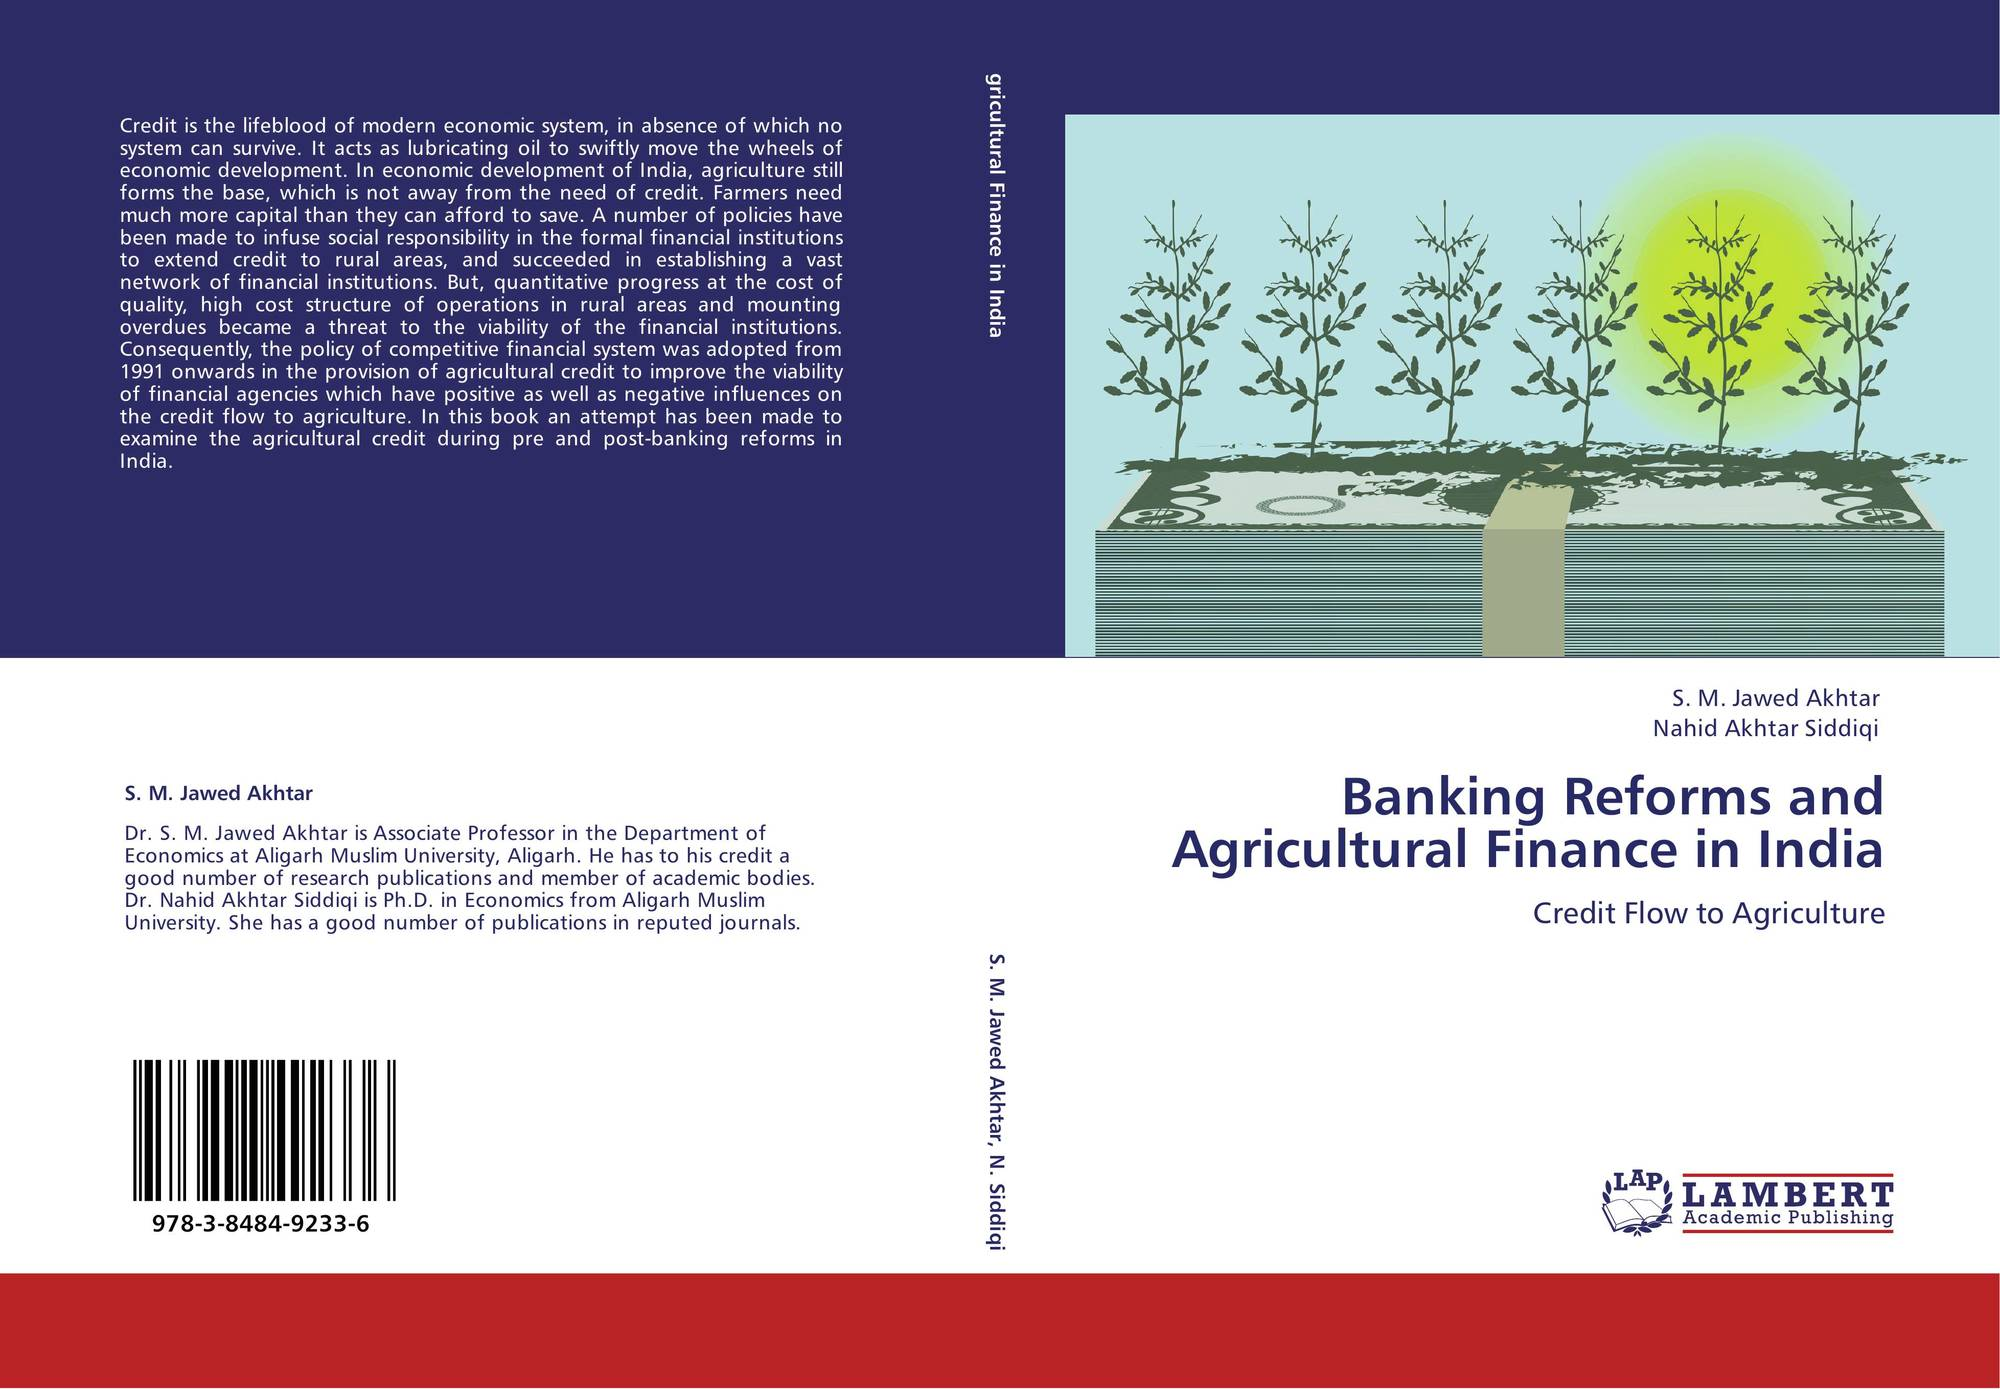 Category:Agricultural finance in India